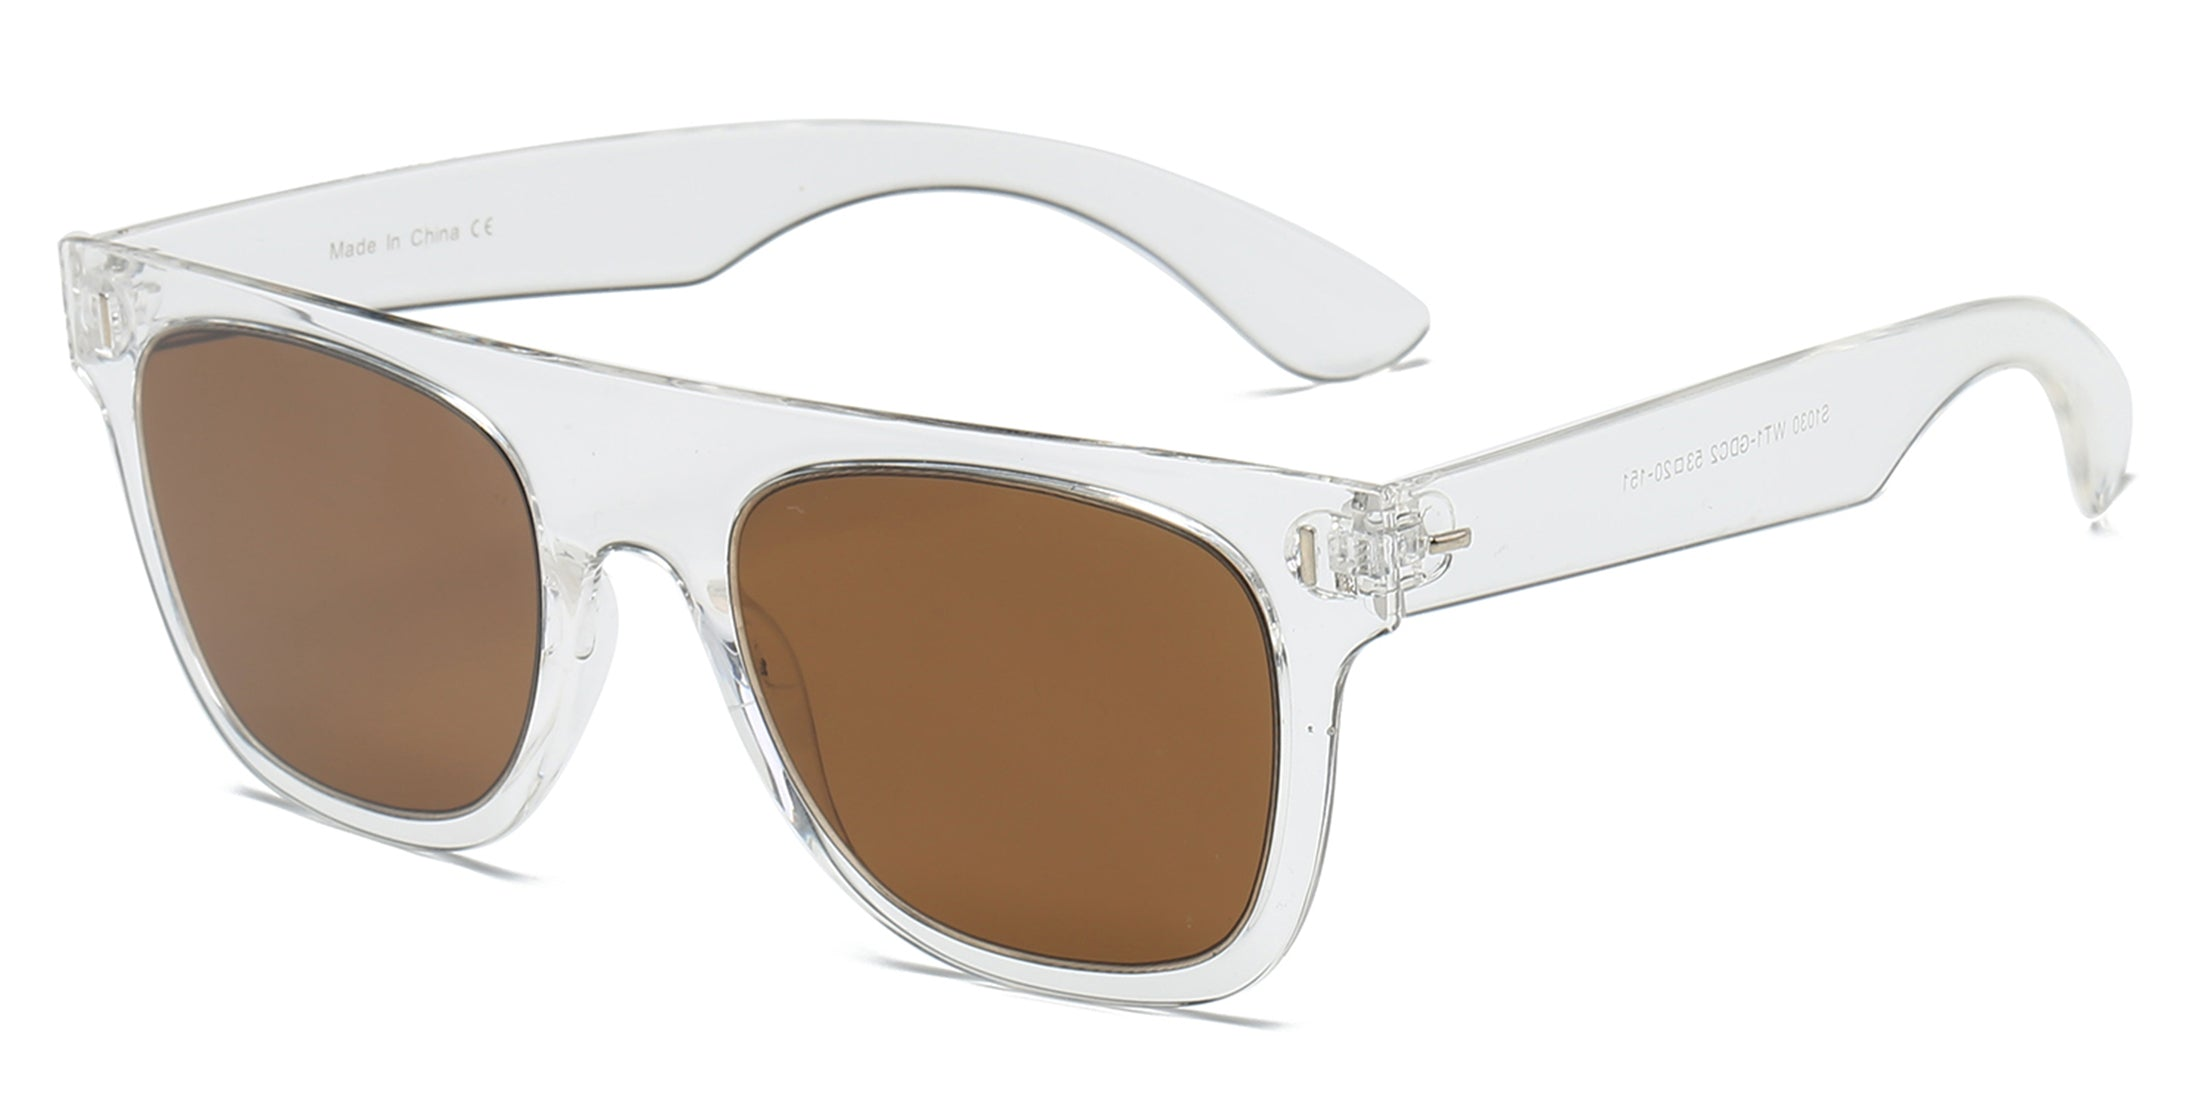 Akcessoryz-unisex square sunglasses with brown lens and clear frame